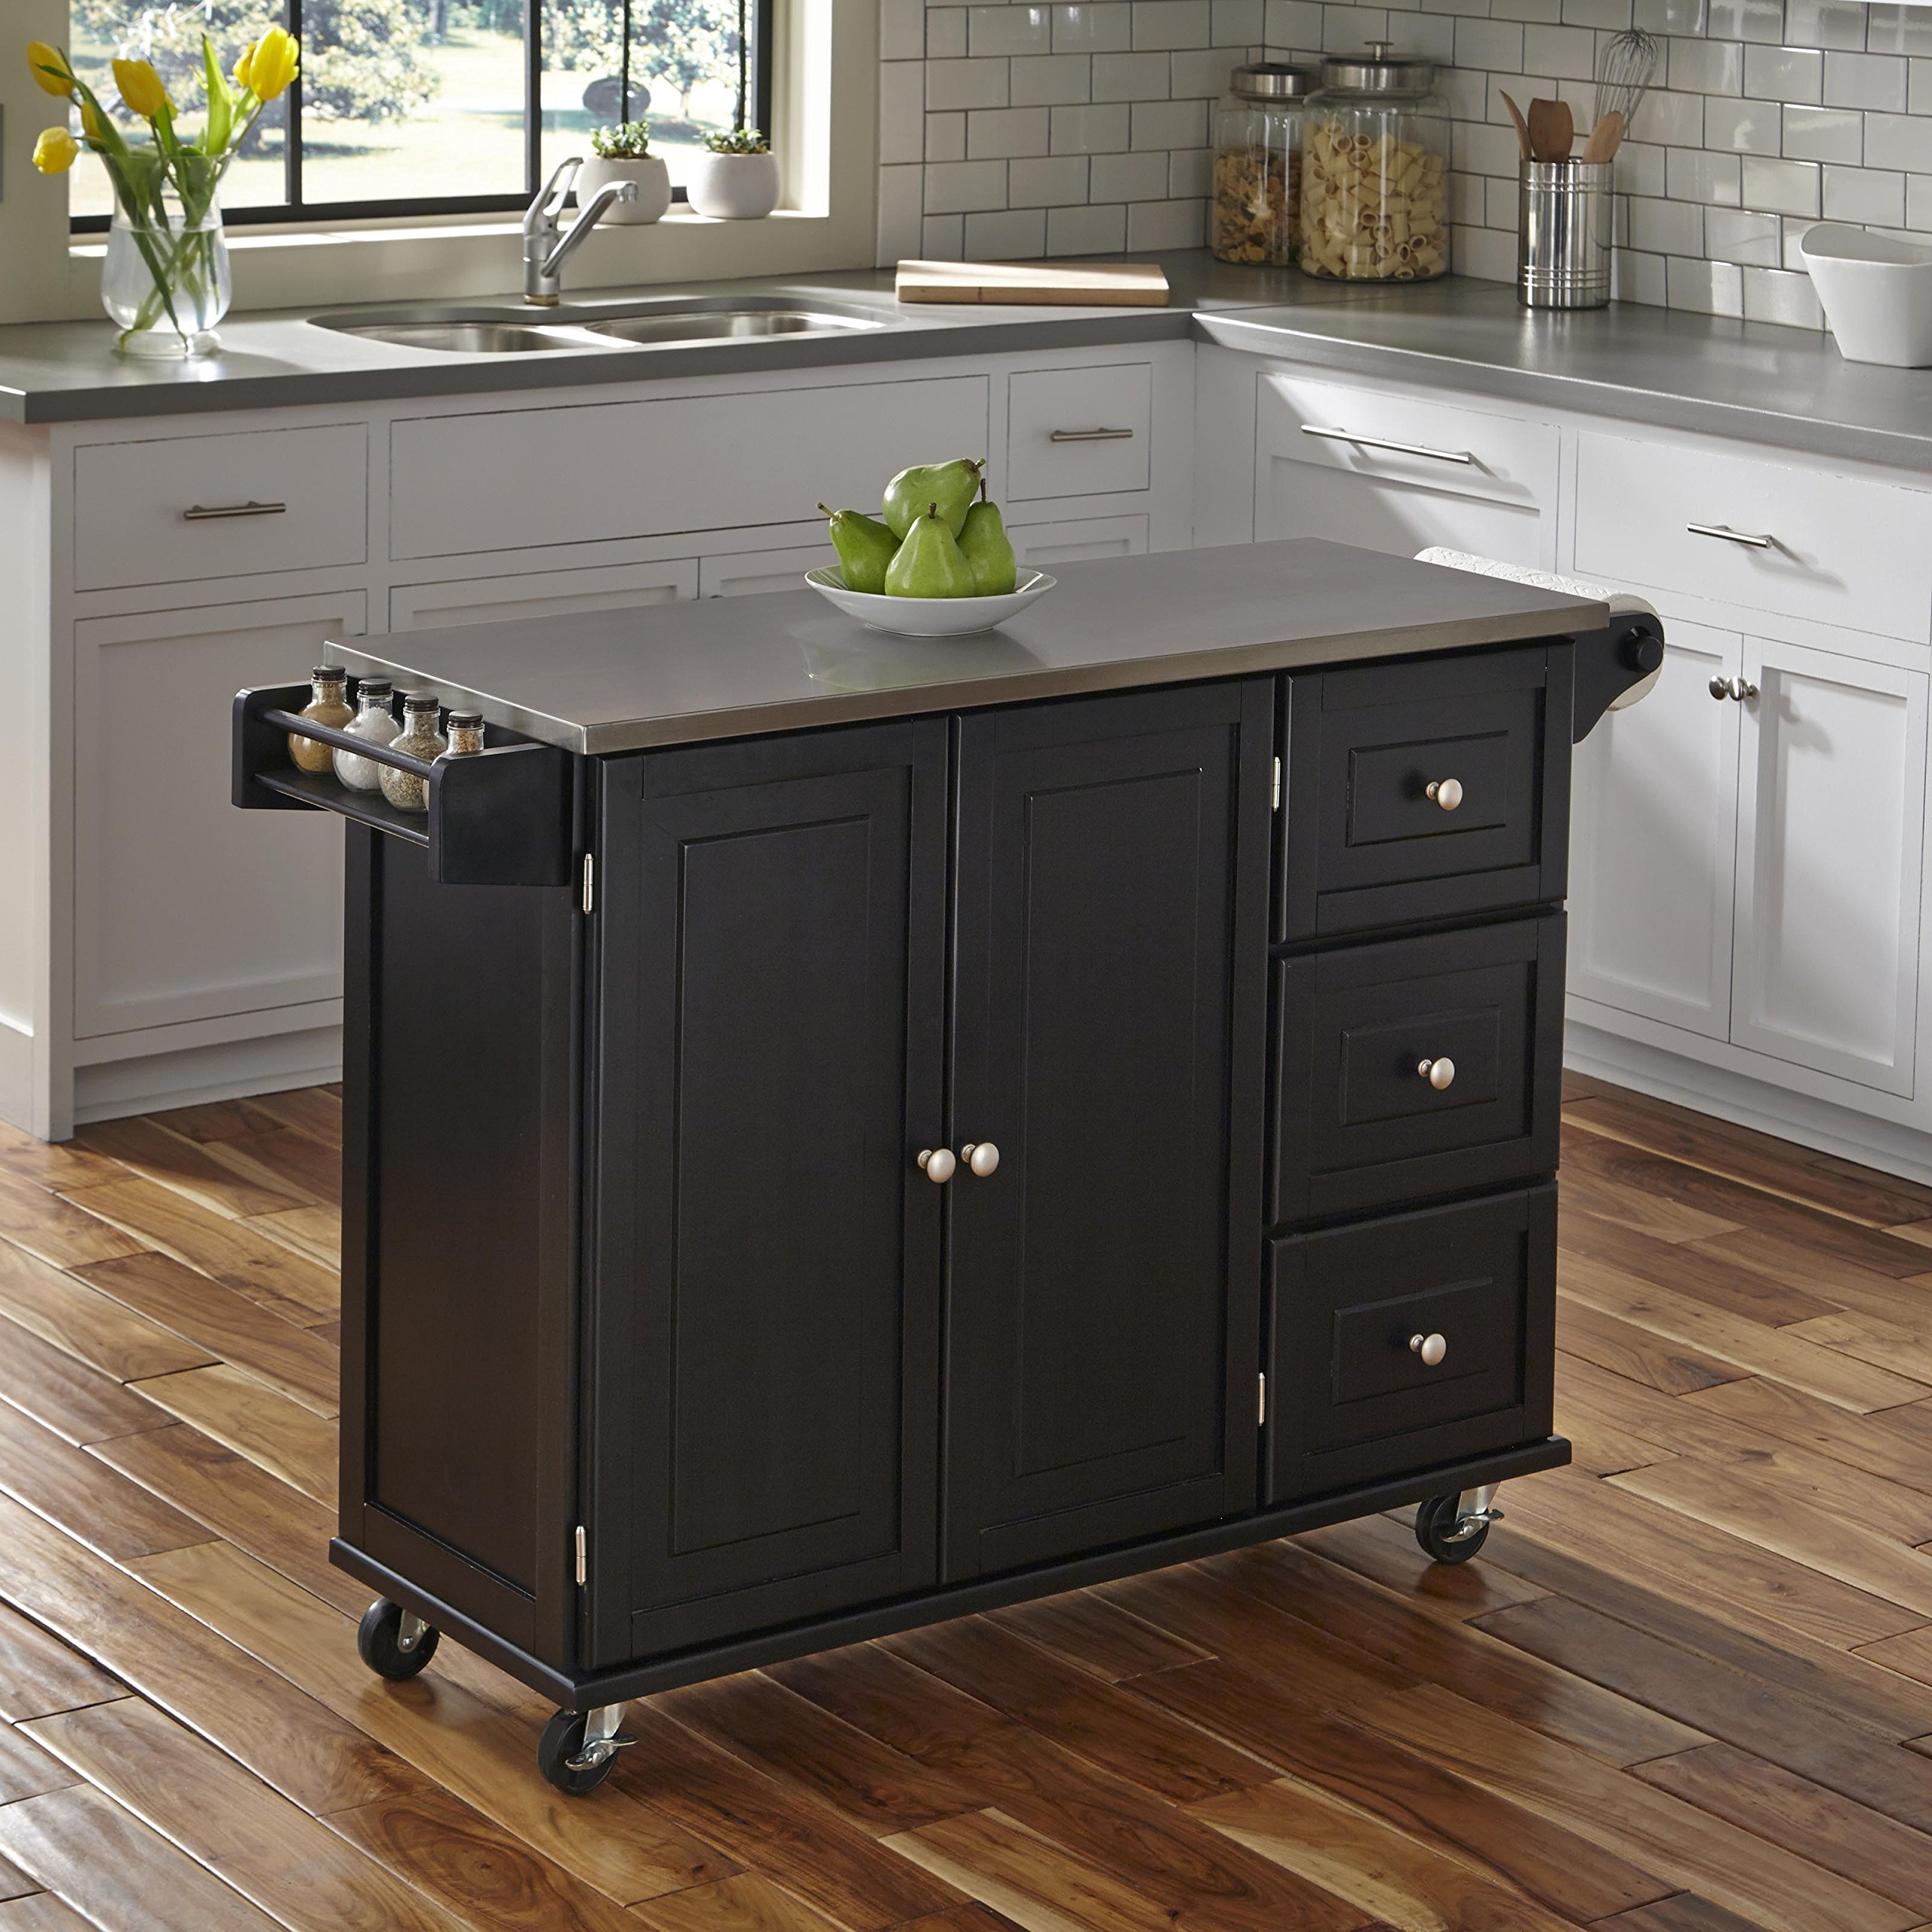 Home Styles 4513-95 Liberty Kitchen Cart with Stainless Steel Top, Black